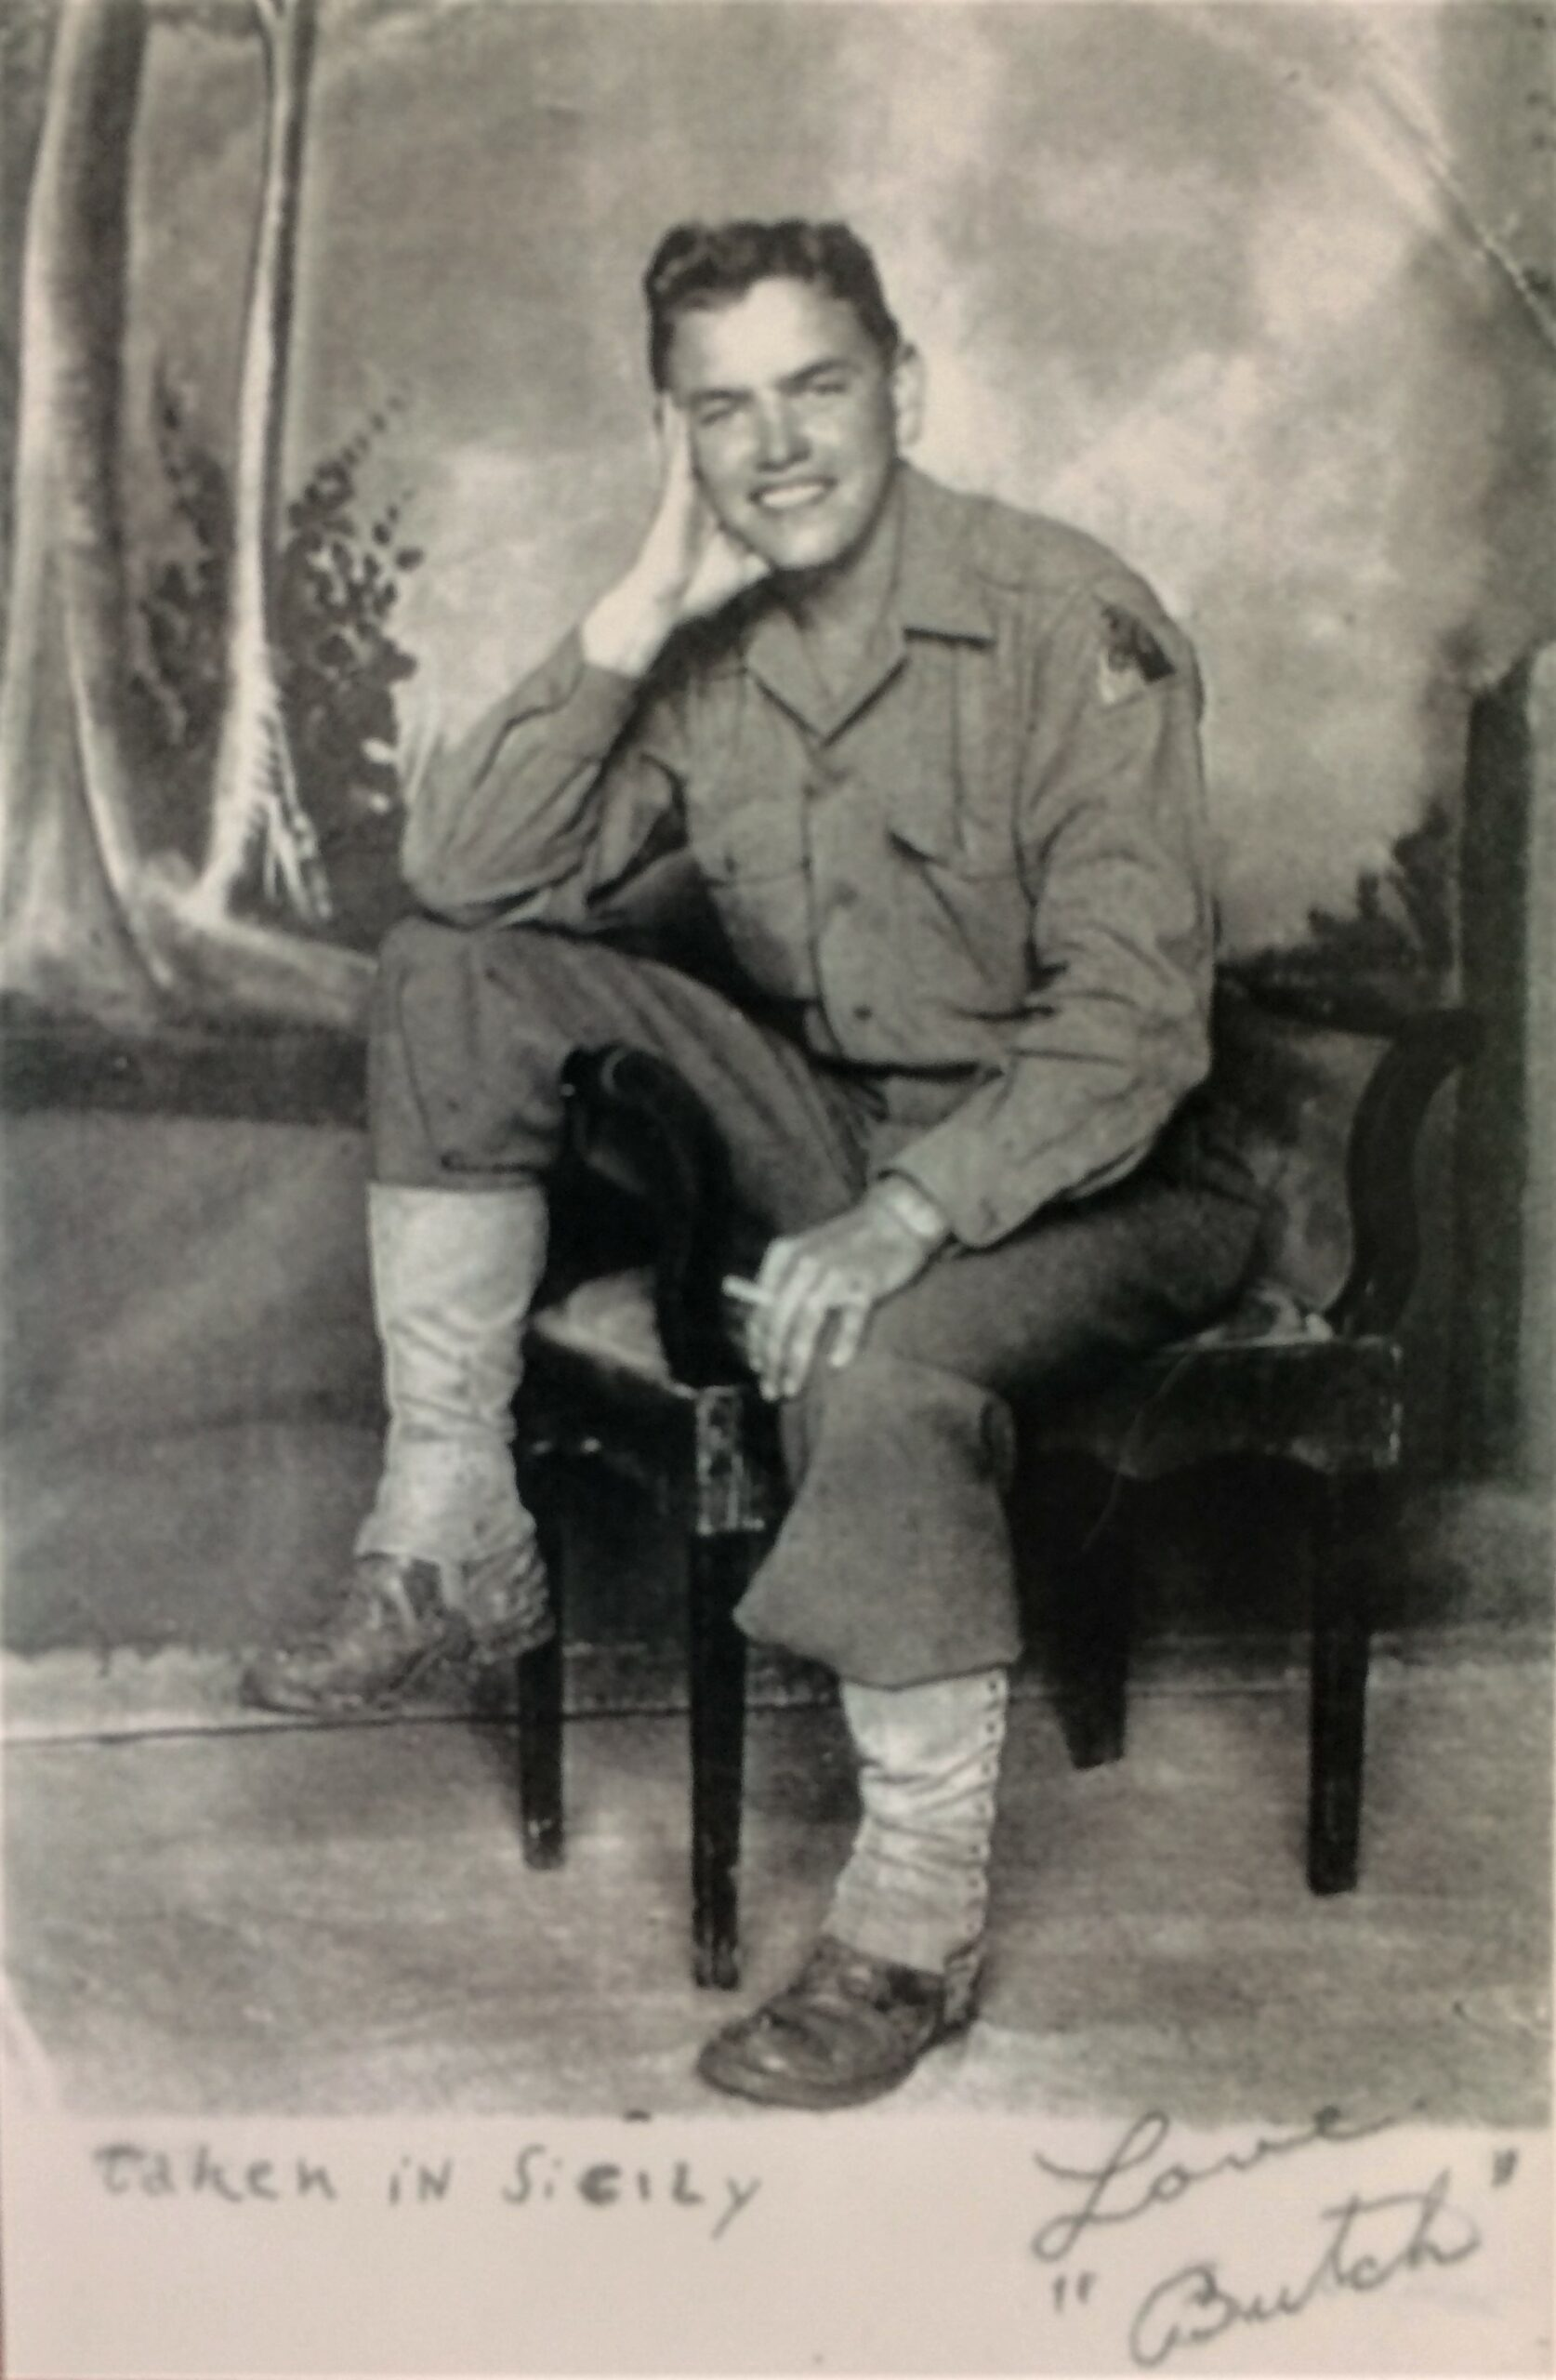 """Photo of Chester """"Butch"""" L Patcyk taken in Sicily, 1943 (Courtesy Carleen Dunne)"""